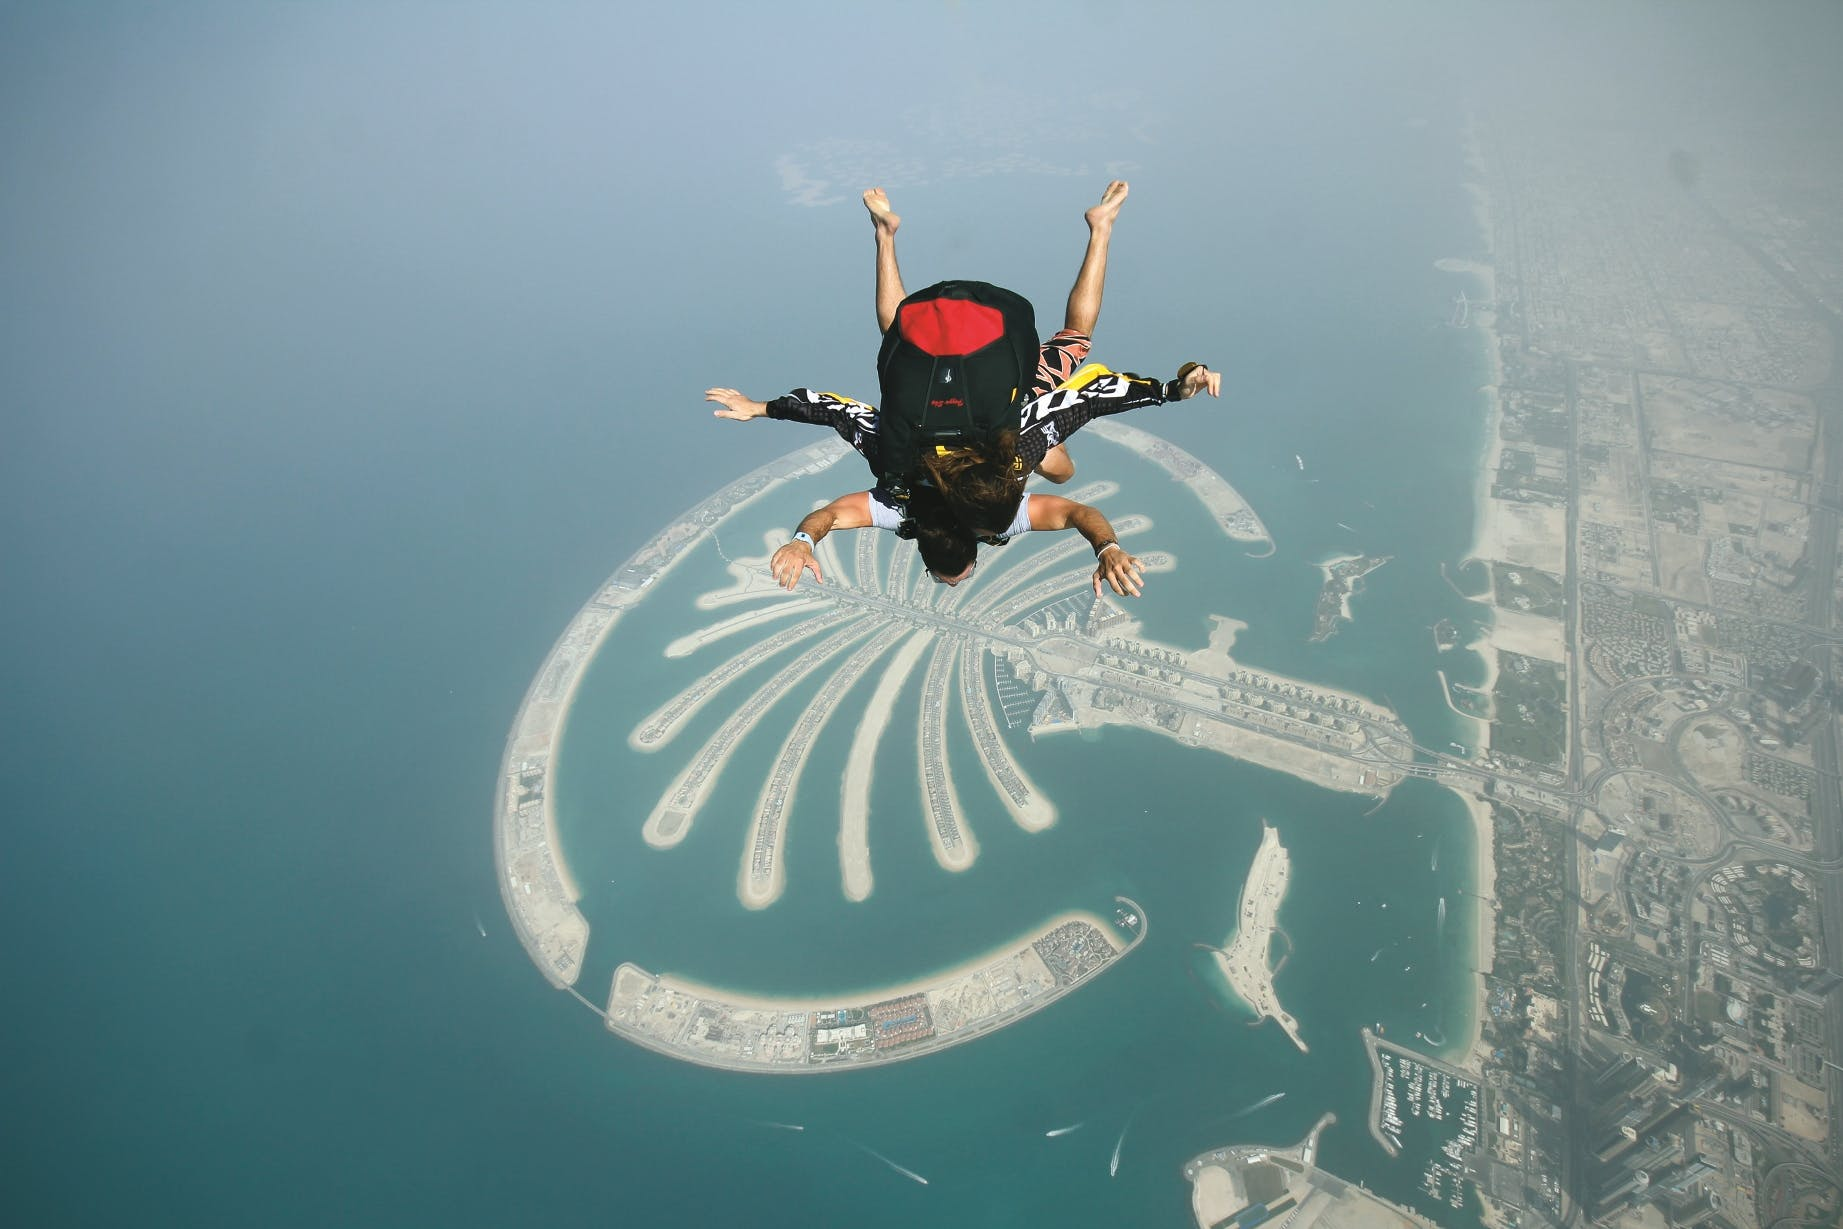 scenic places to skydive